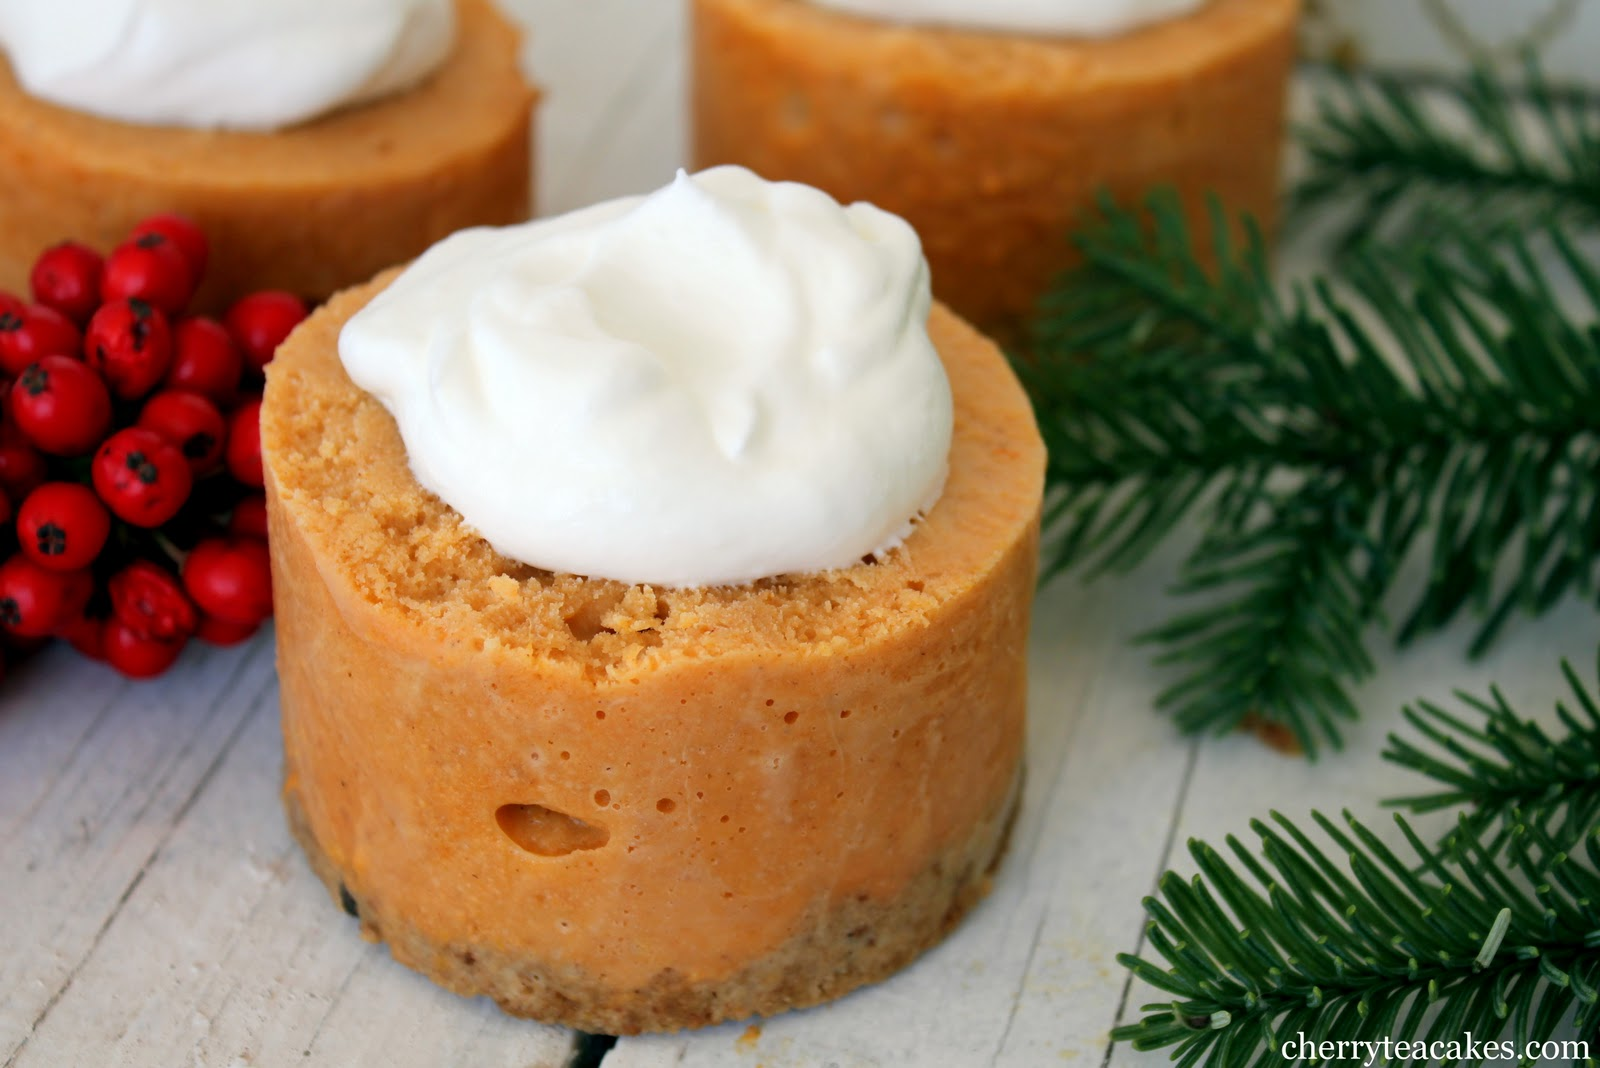 ... pumpkin ice cream pie! The gingerbread crust is a flavorful addition